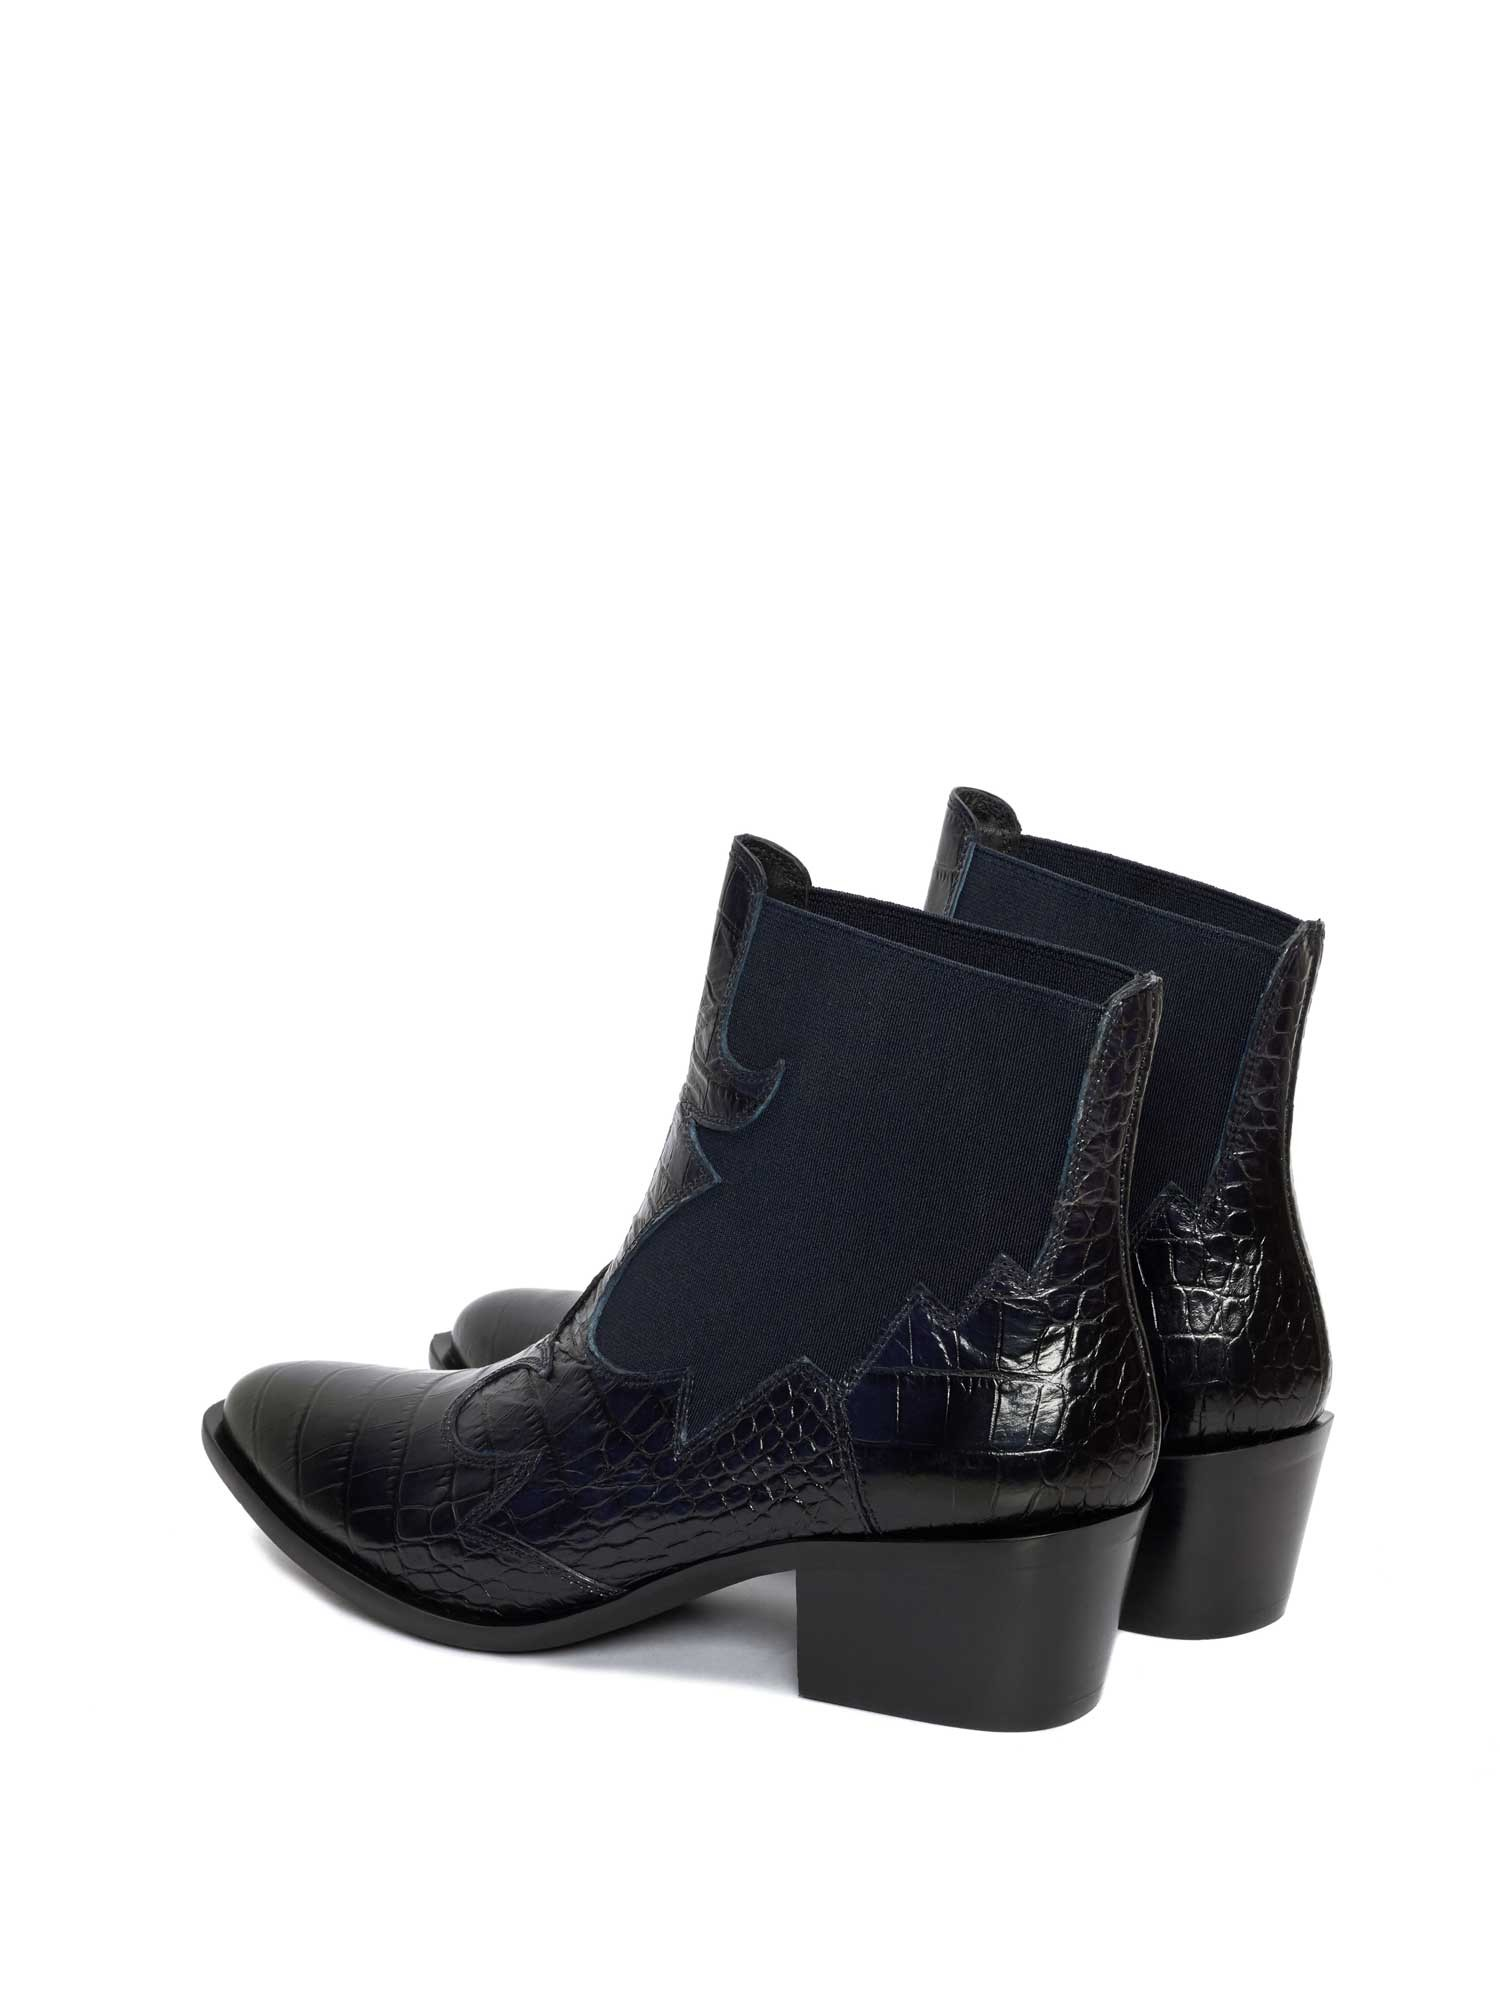 ROSANA COCCO NAVY ANKLE BOOT